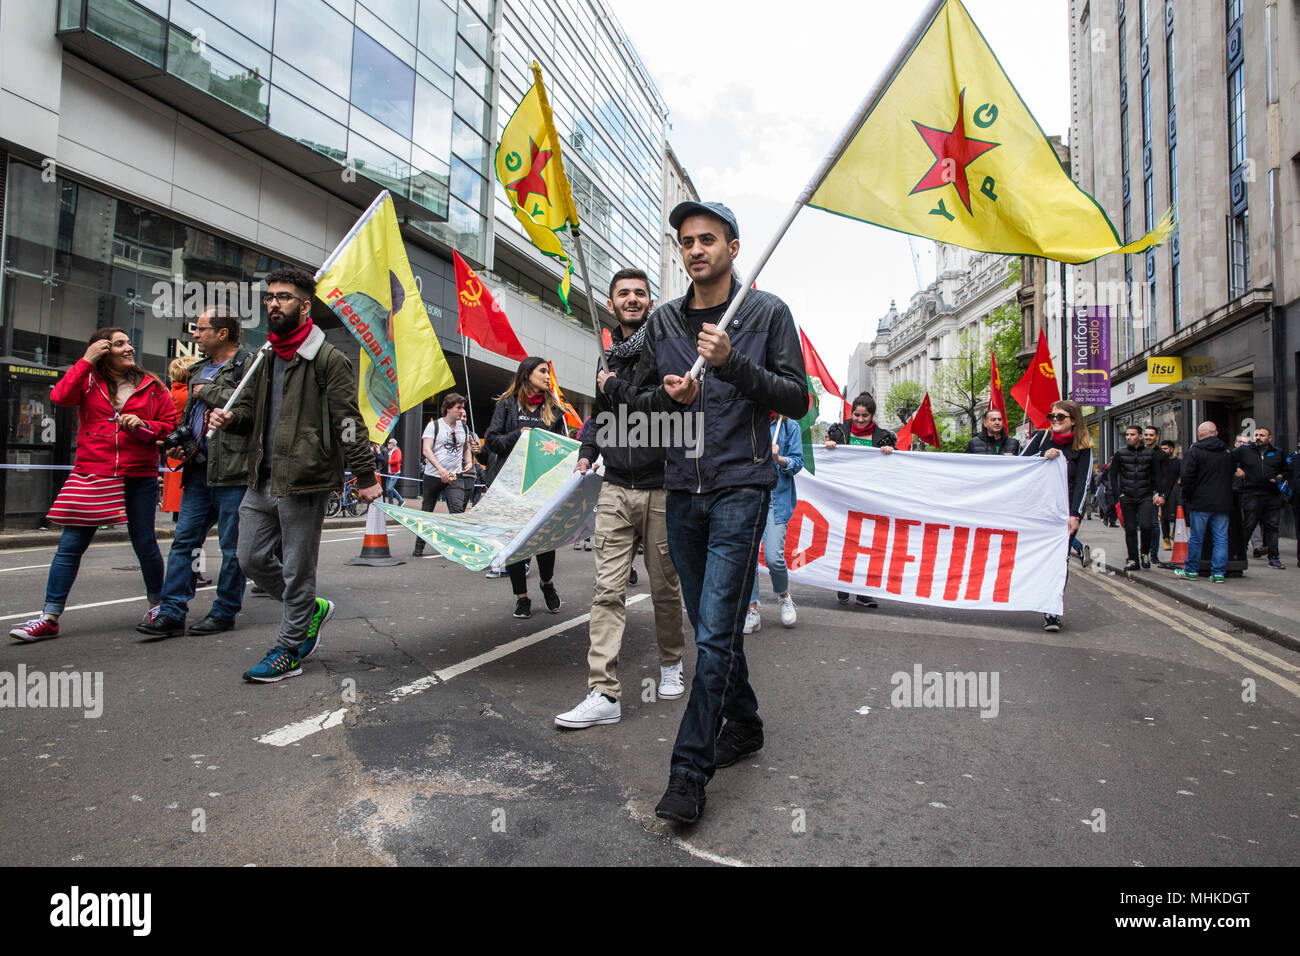 London, UK. 1st May, 2018. Kurds with YPG flags take part in the annual May Day march to mark International Workers' Day. Credit: Mark Kerrison/Alamy Live News - Stock Image